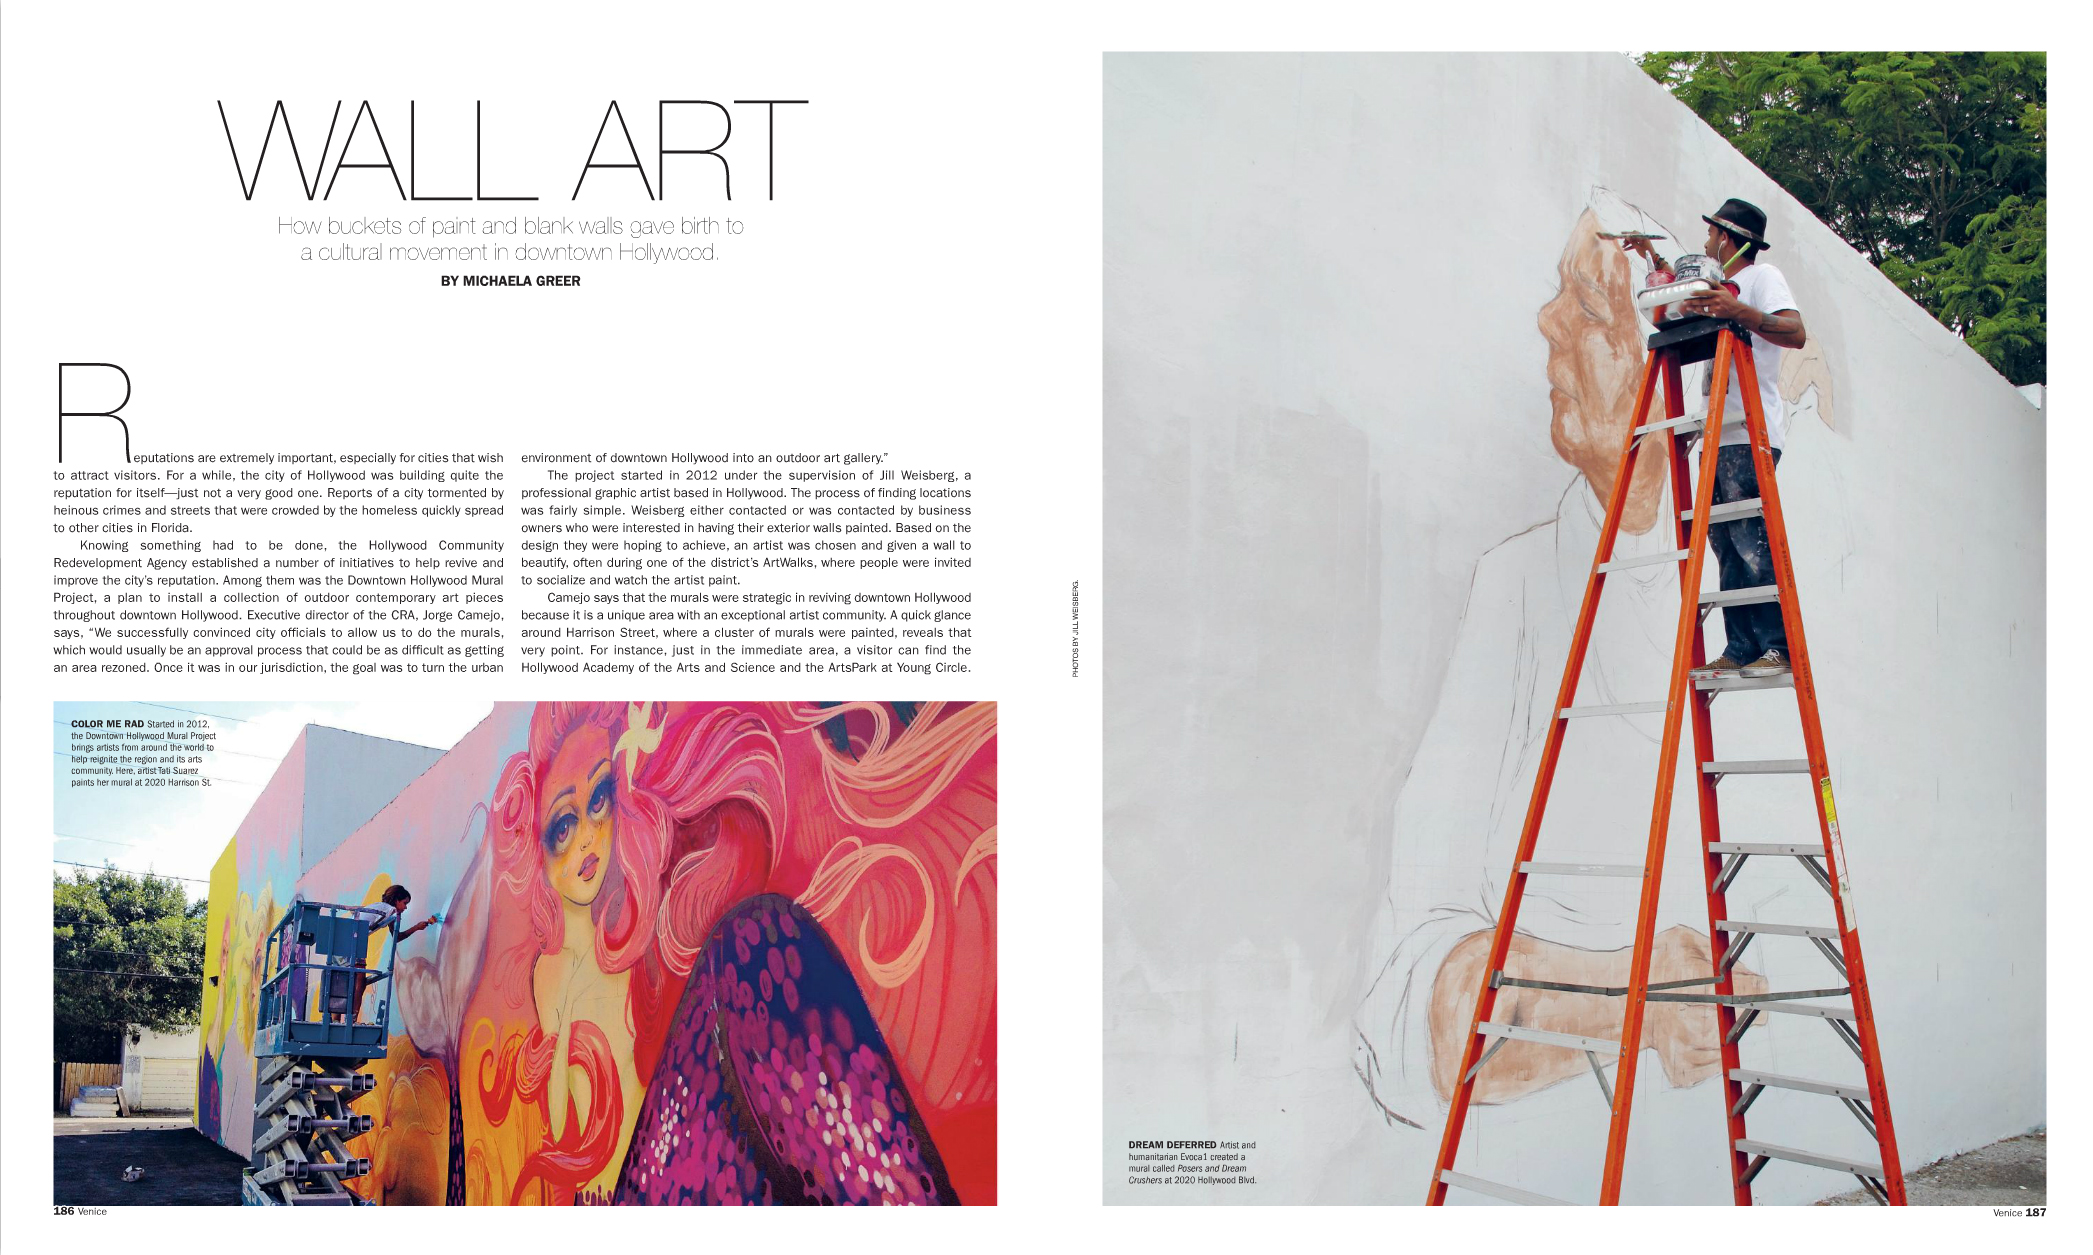 Downtown hollywood mural project in venice magazine for Downtown hollywood mural project